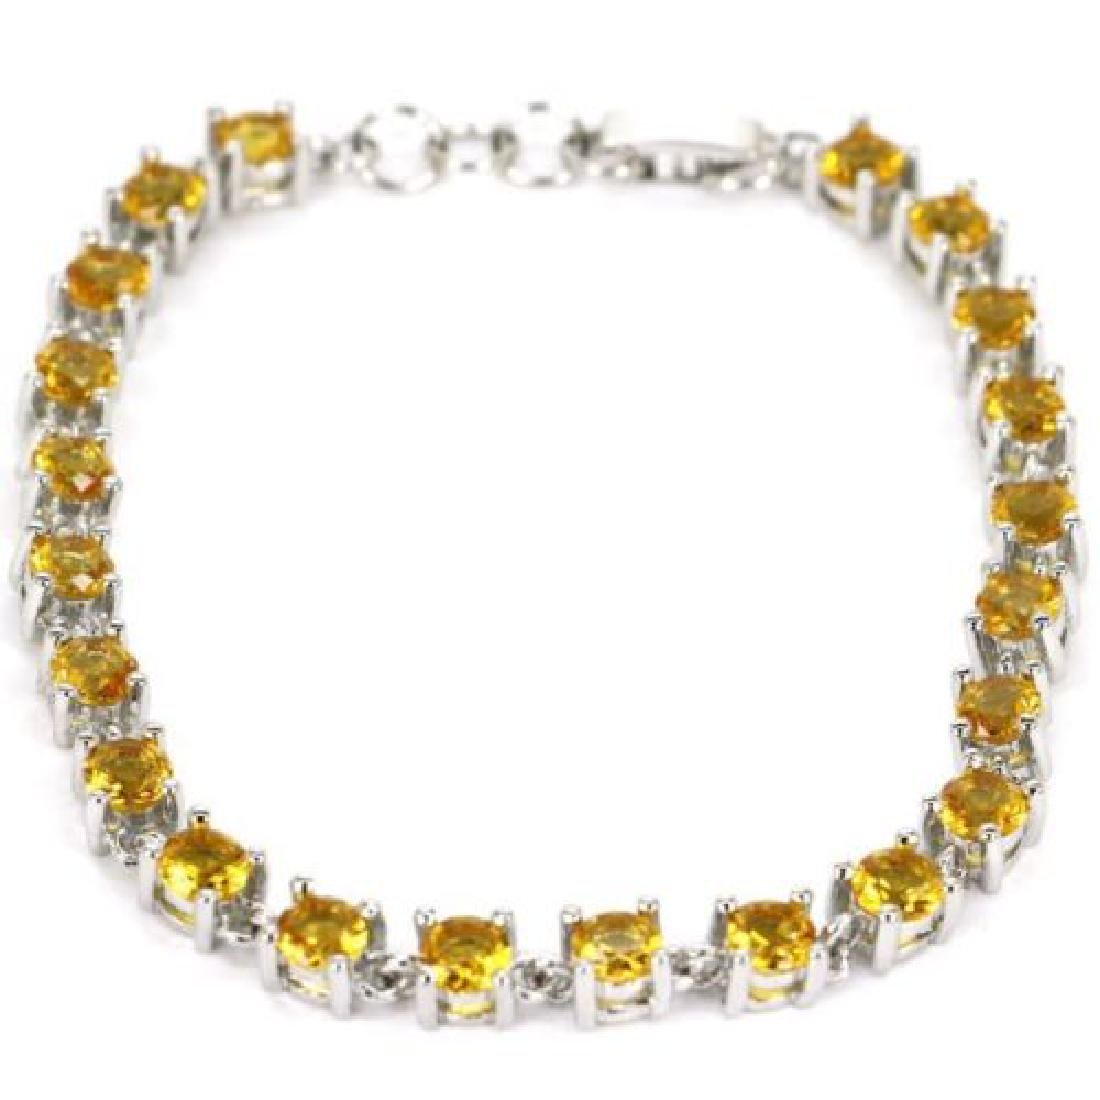 Gorgeous Golden Citrine, White CZ Silver Bracelet